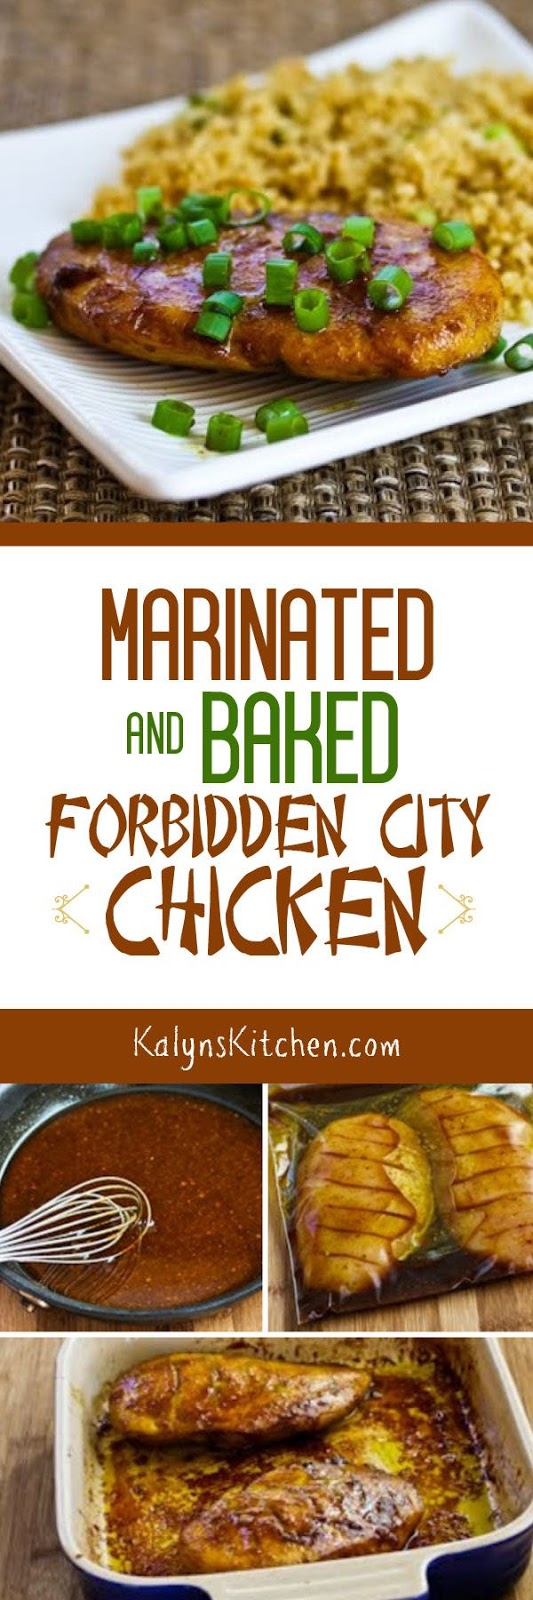 Marinated and Baked Forbidden City Chicken - Kalyn's Kitchen